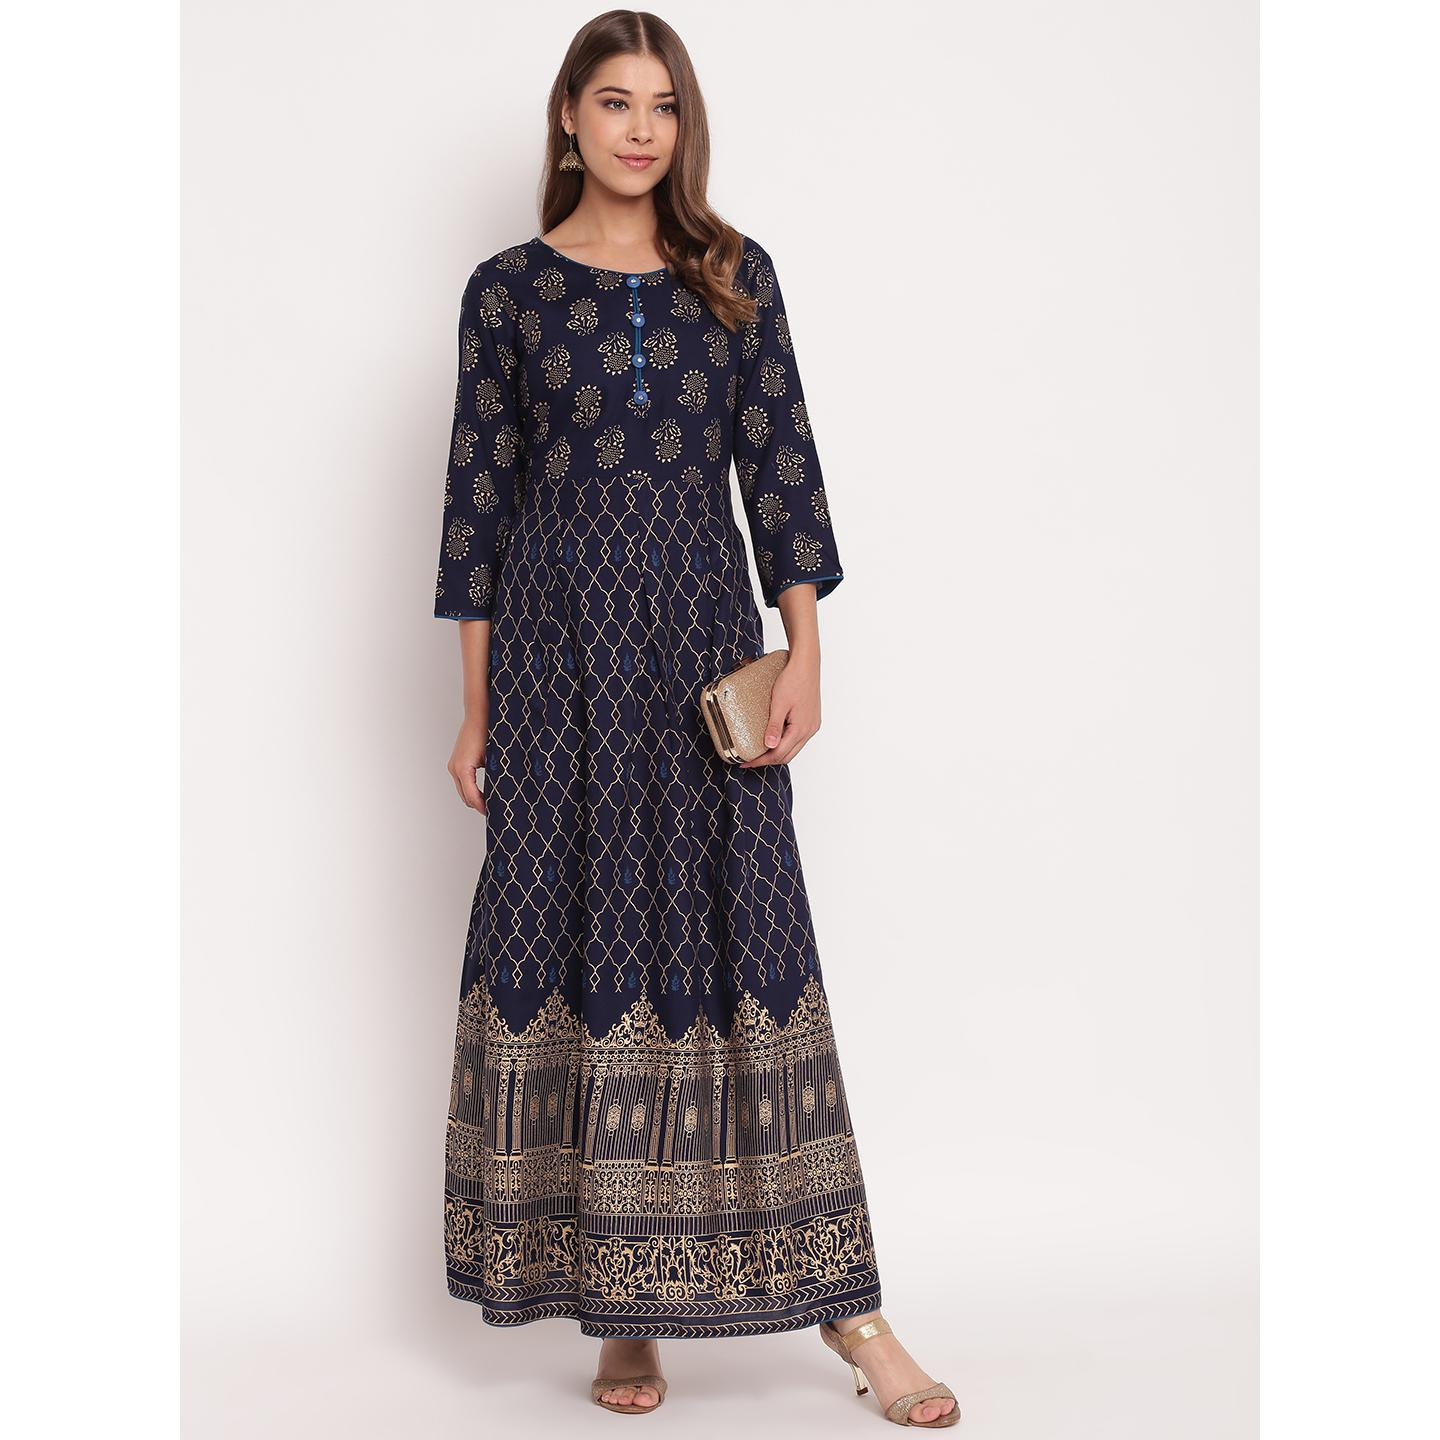 Blissful Navy Blue Colored Party Wear Printed Flared Ankle Length Rayon Kurti